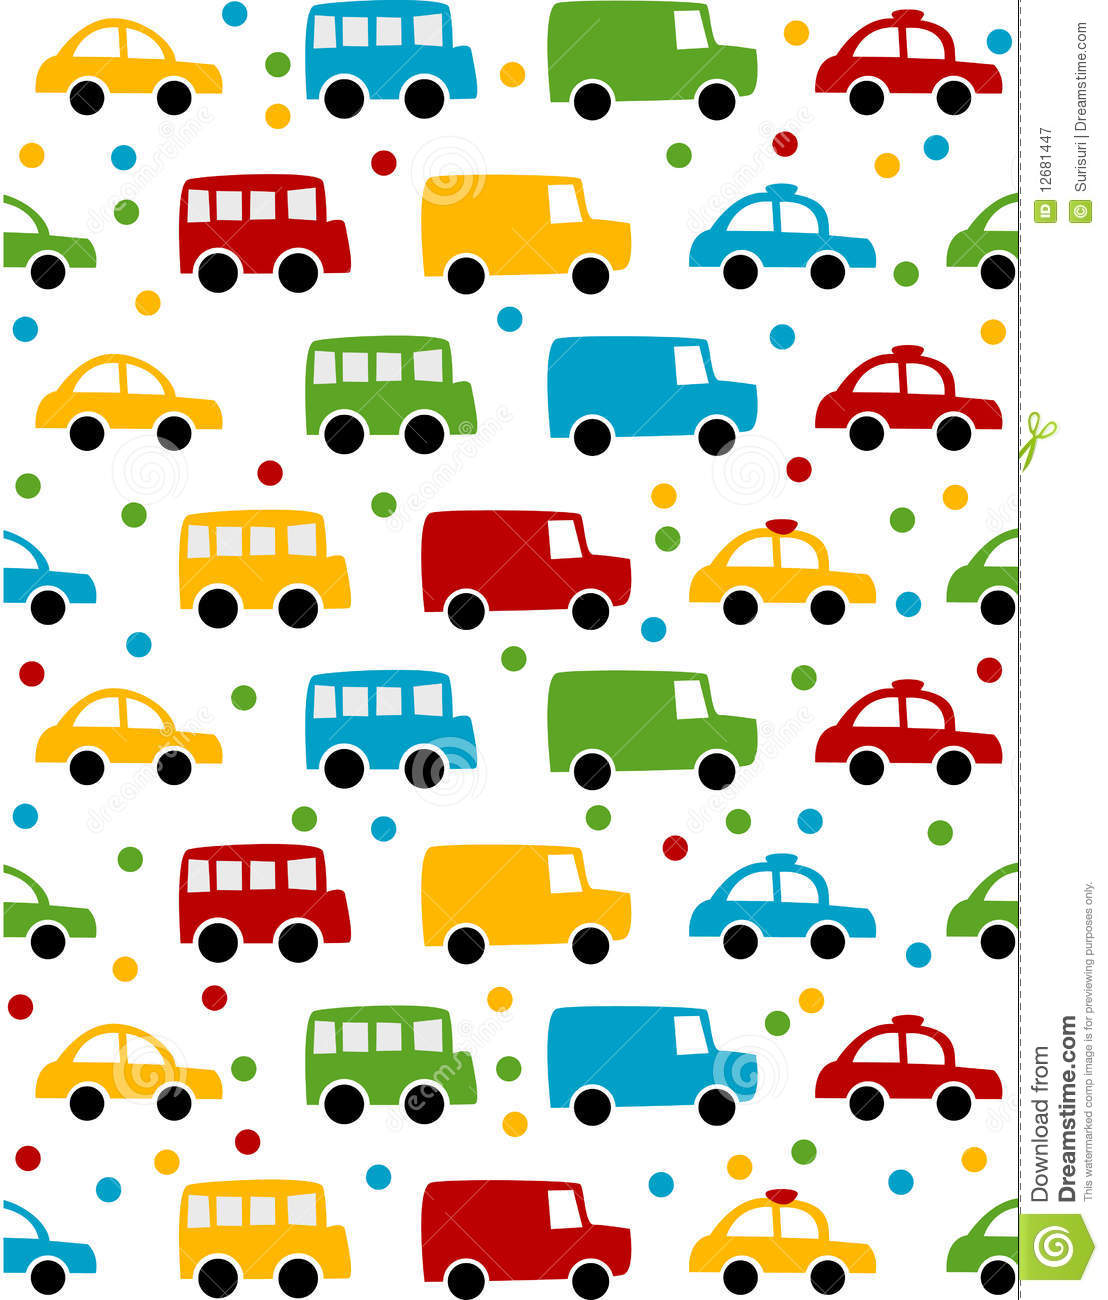 Car background stock vector. Illustration of baby, blue ...